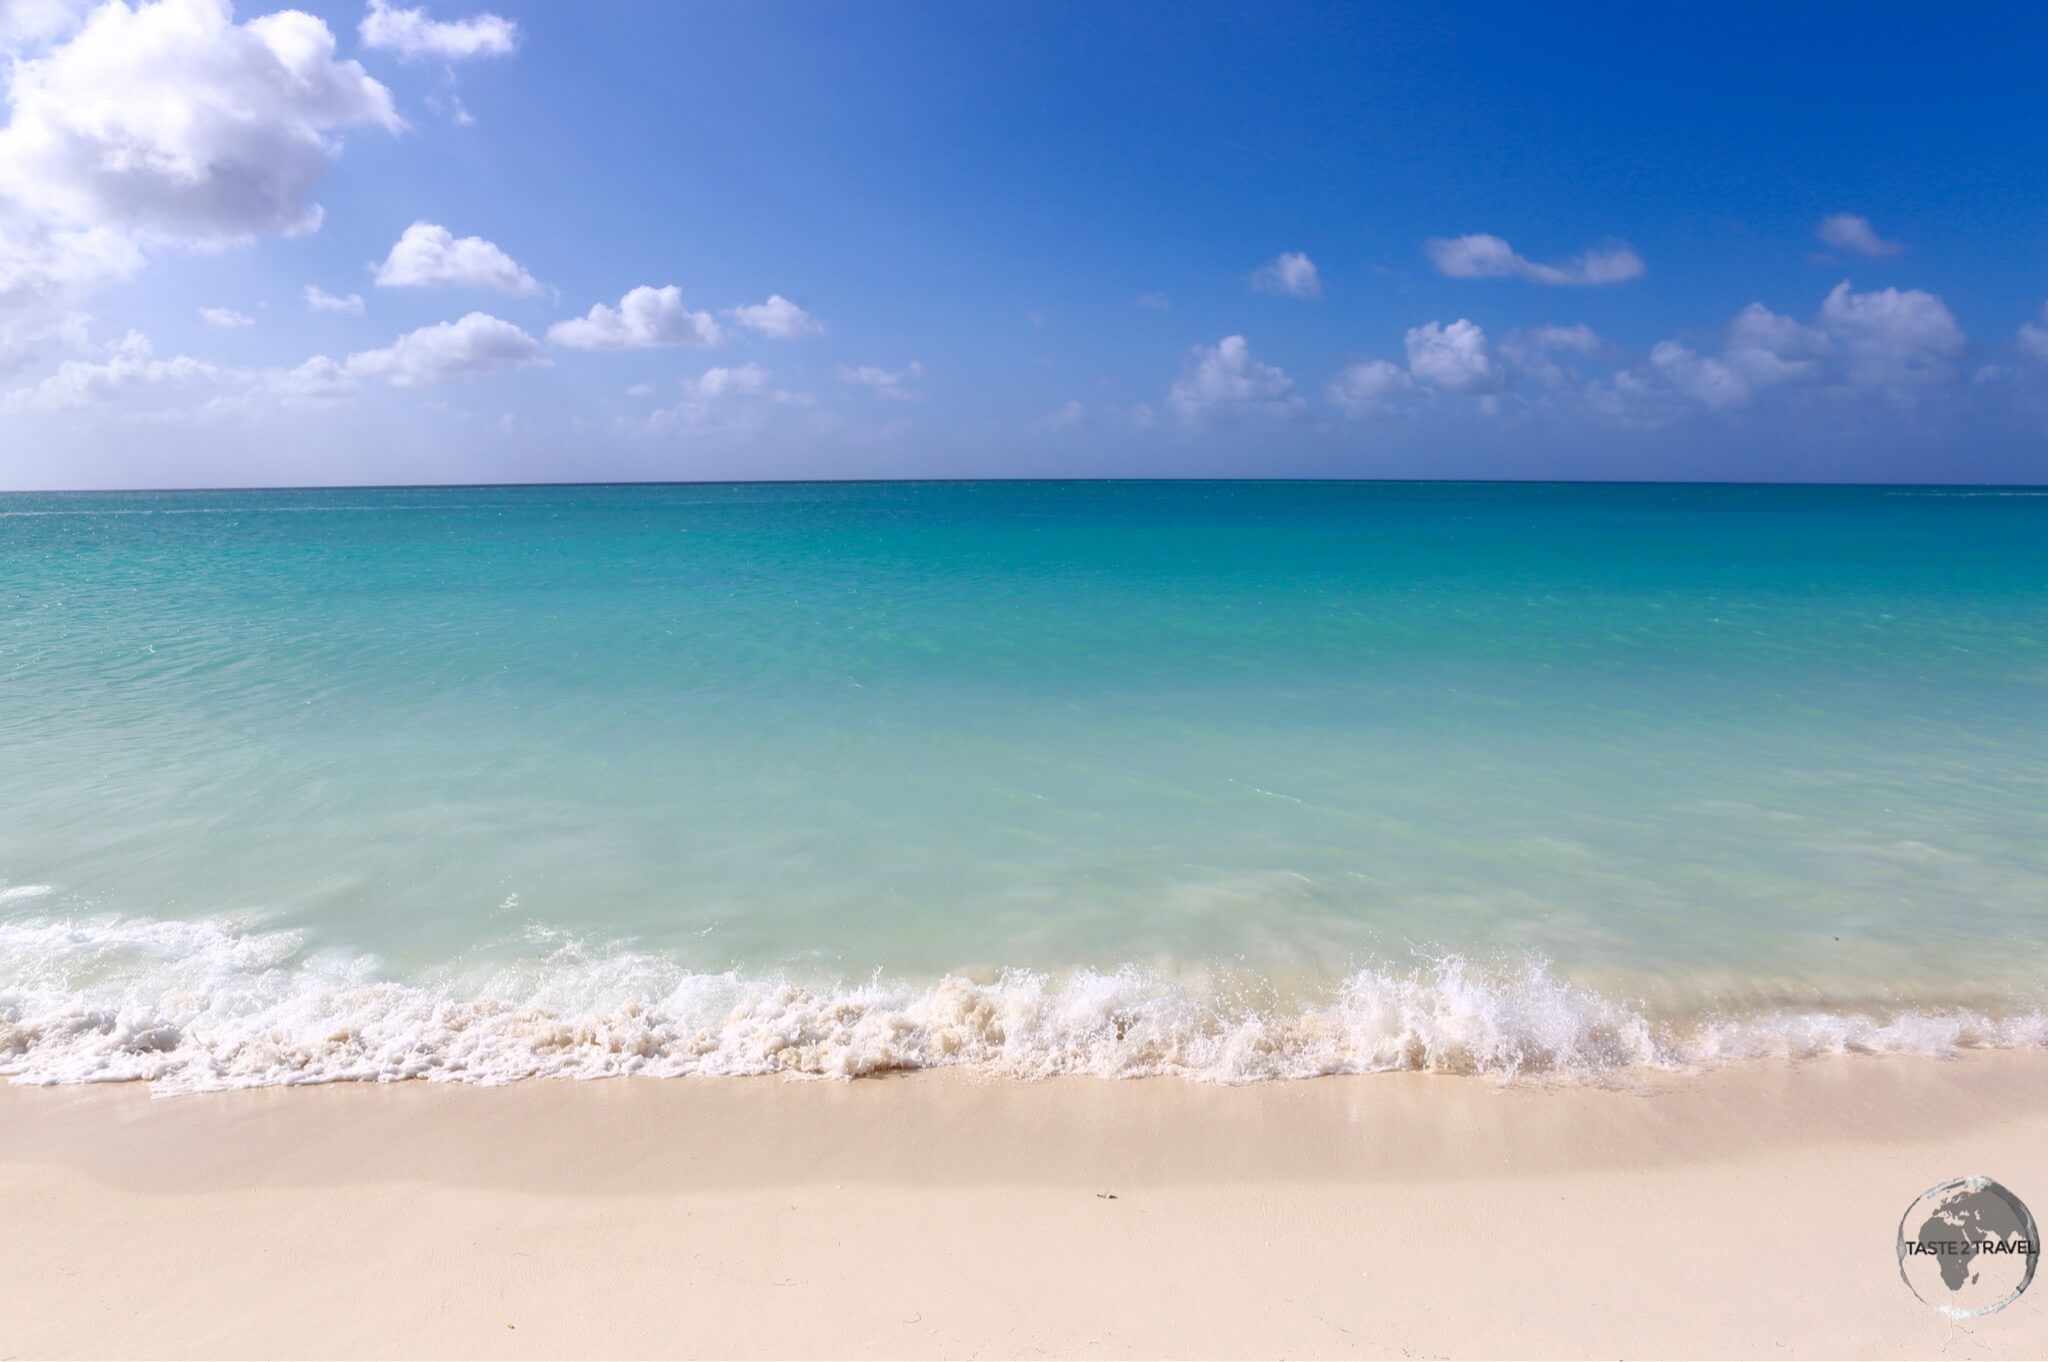 The inviting turquoise waters of Palm beach are a key tourist draw.